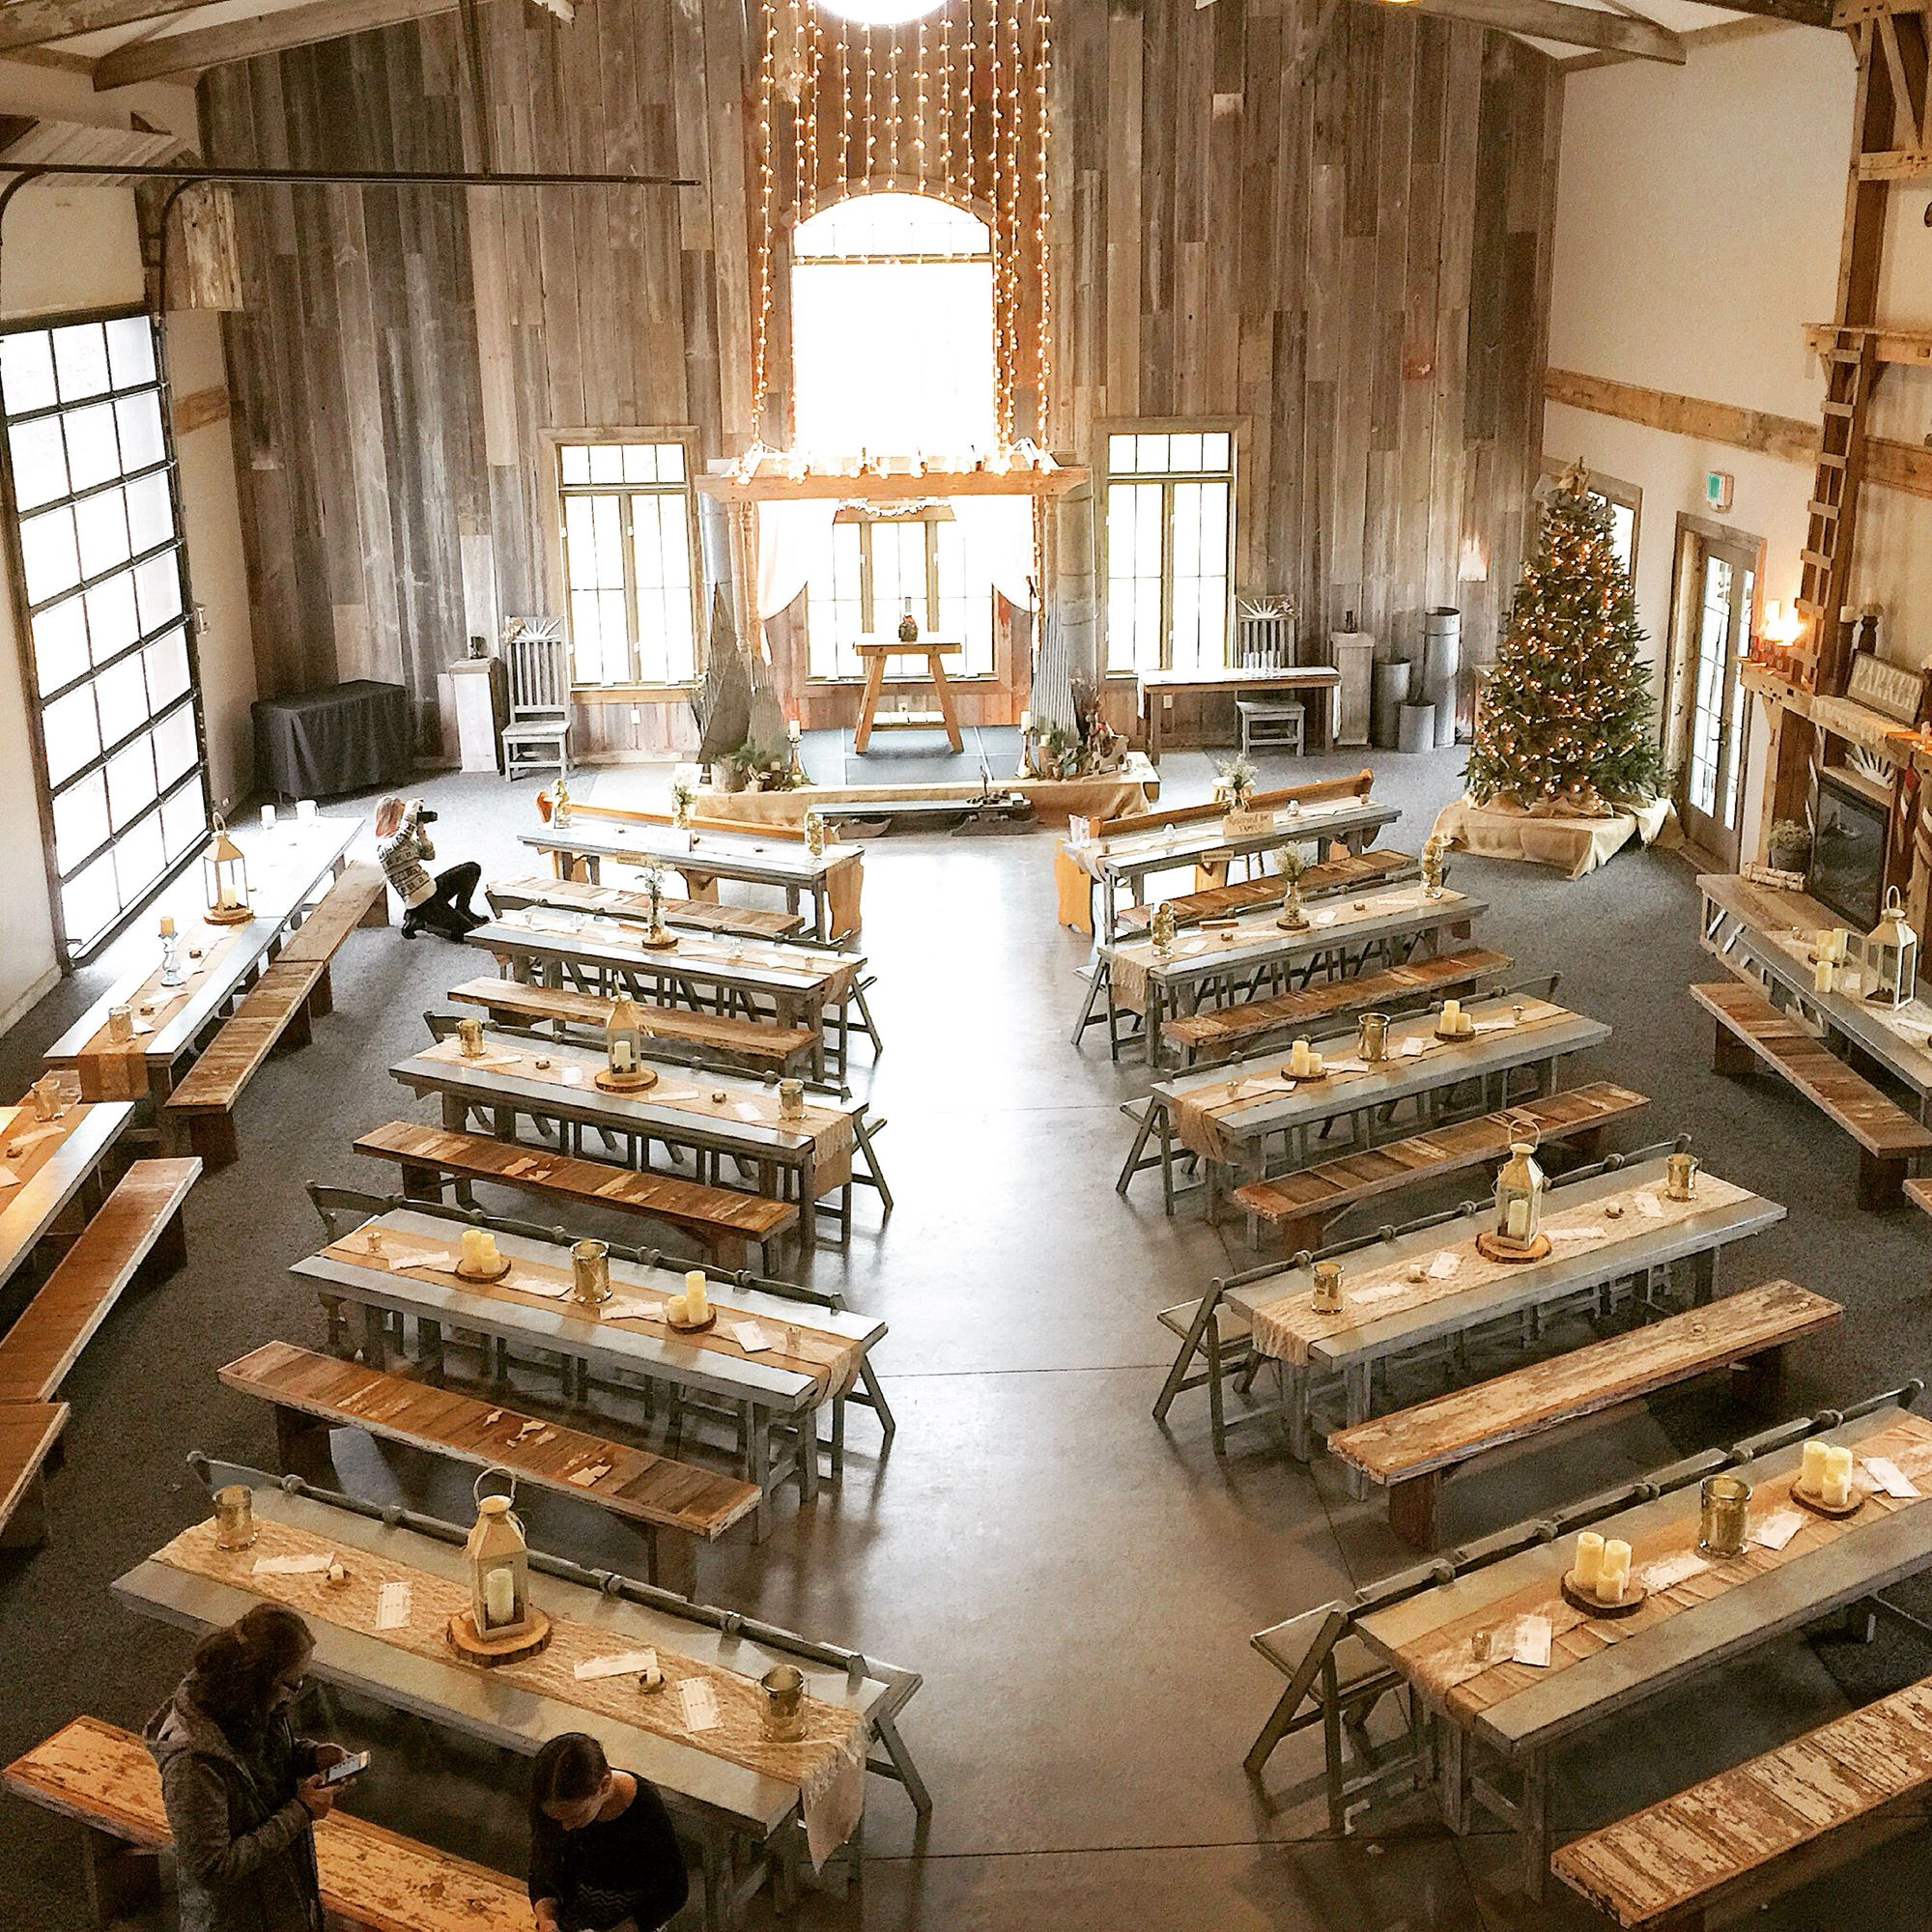 Indoor Wedding Ceremony Victoria Bc: The Barnes Place Is Wonderful Rustic Venue With Options